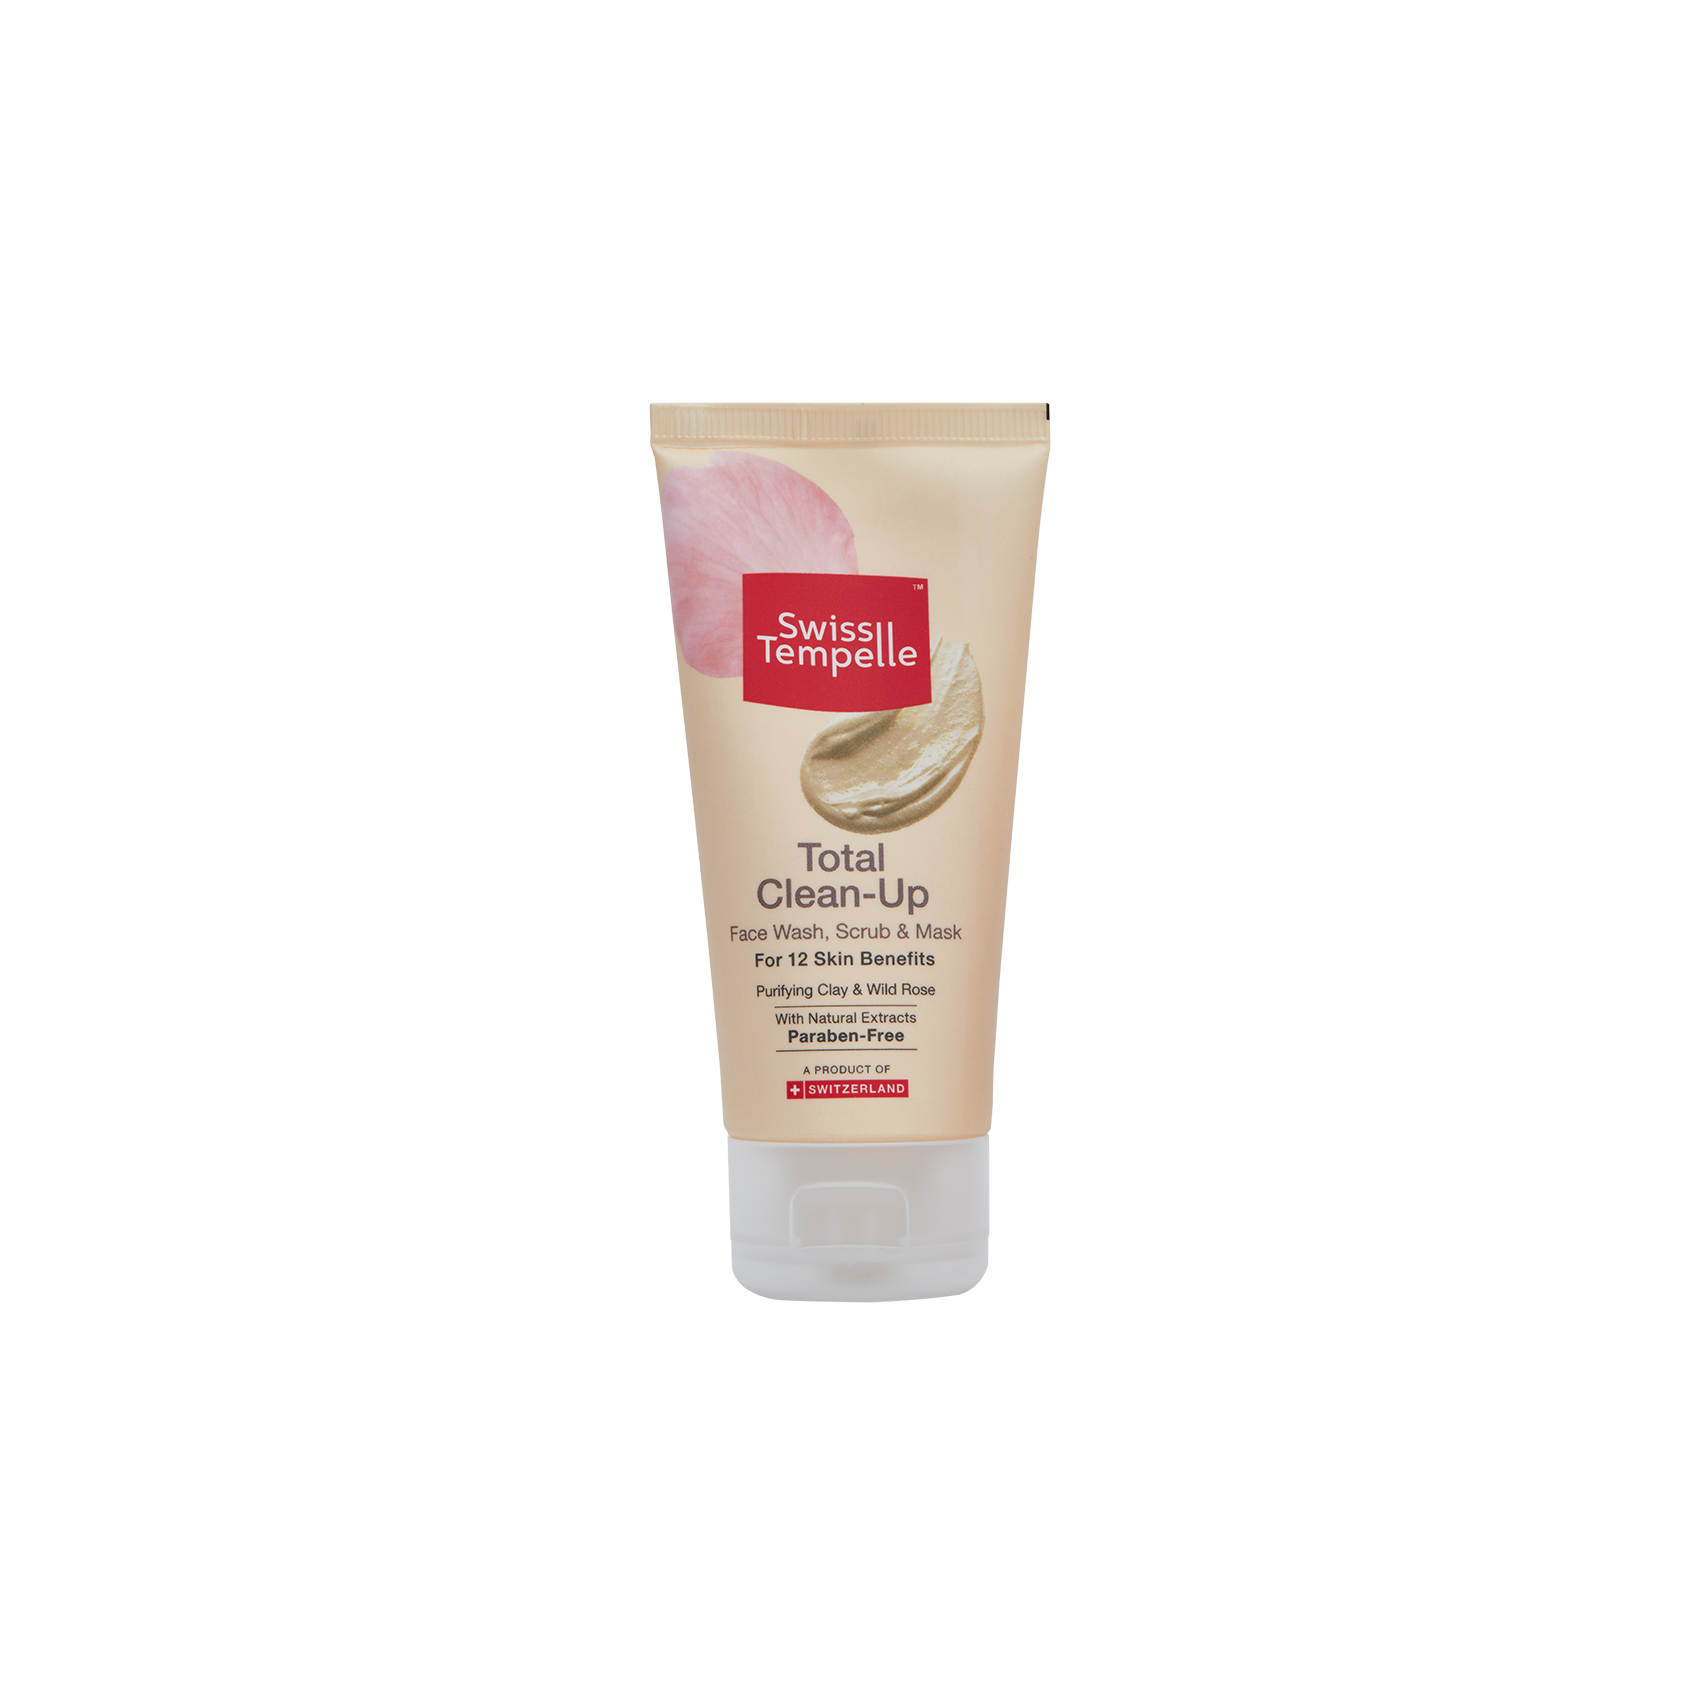 Swiss Tempelle Total Clean-Up Face Wash, Scrub & Mask